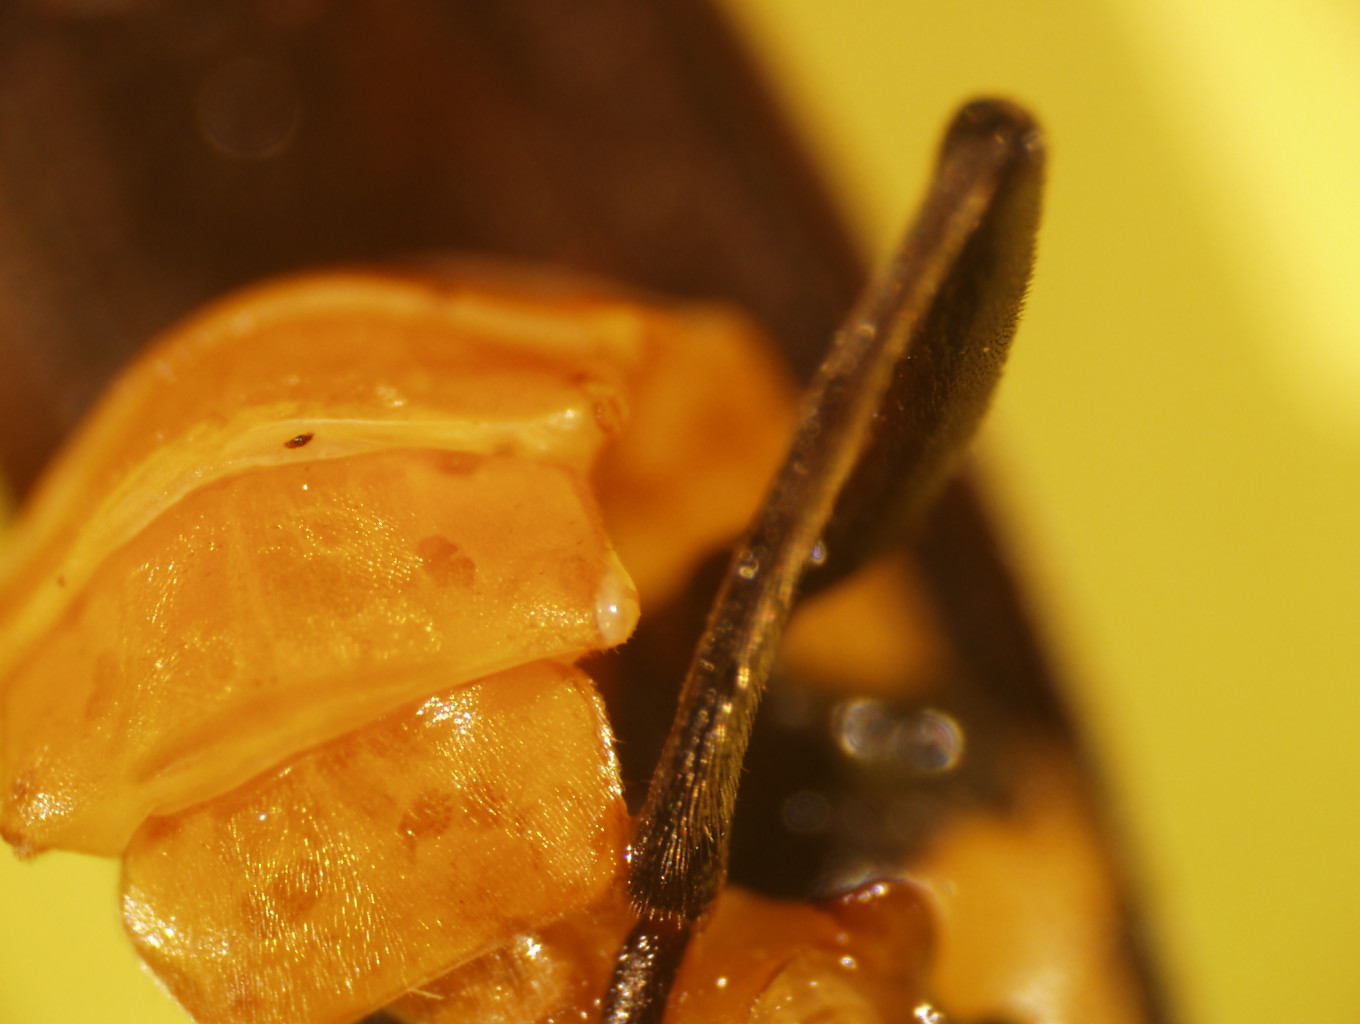 Close up image of the secreted fluid of a soldier beetle